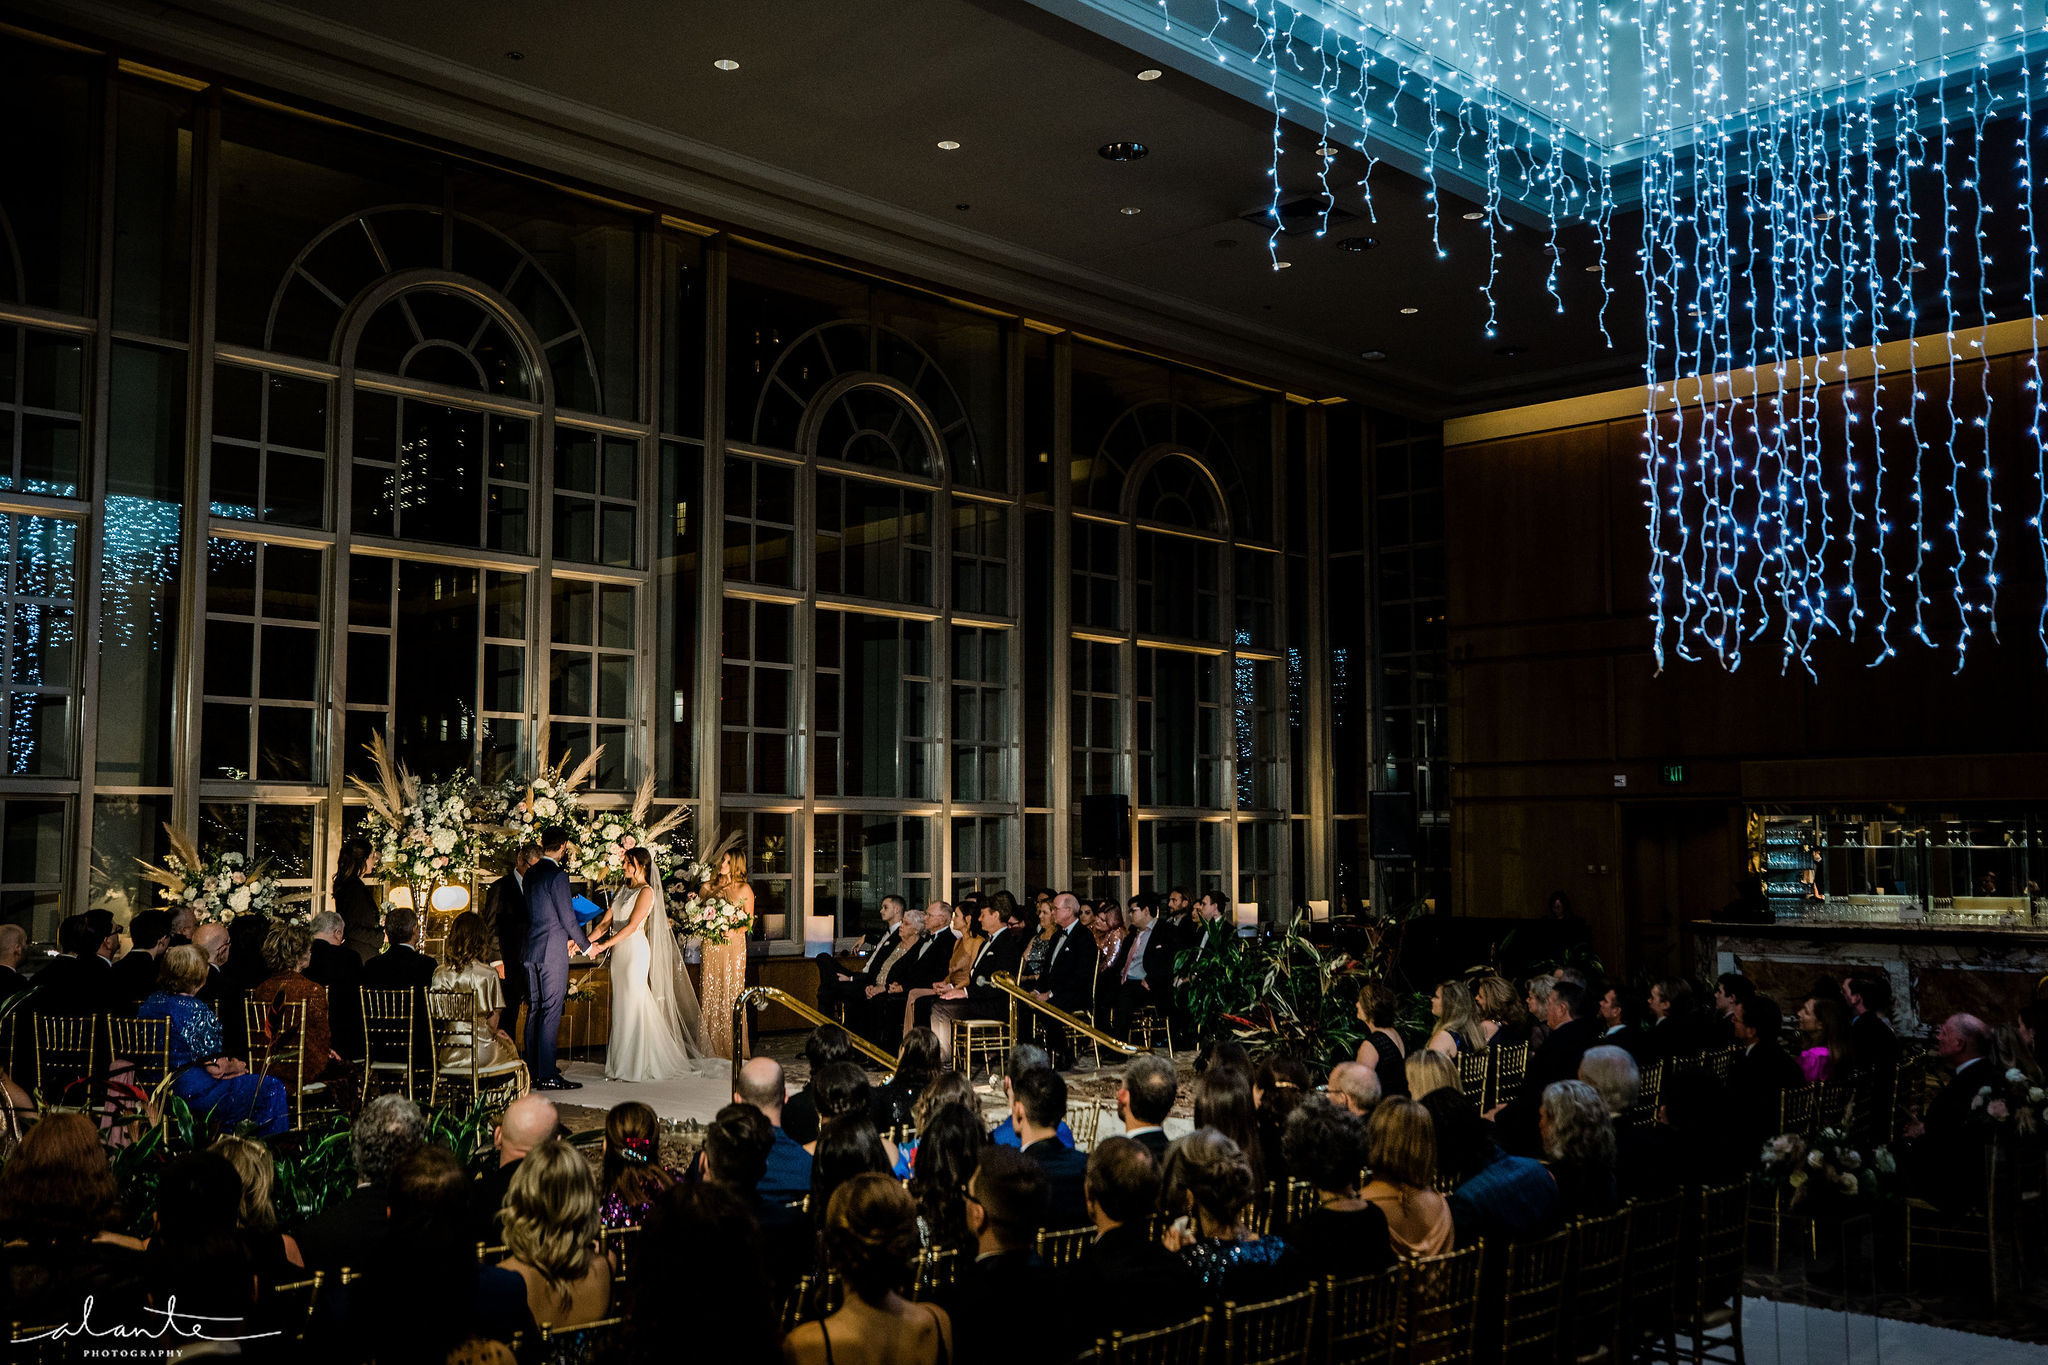 Winter wedding ceremony at the Garden Room at Fairmont Hotel in Seattle, a large hanging holiday light chandelier fills the room with a romantic glow.